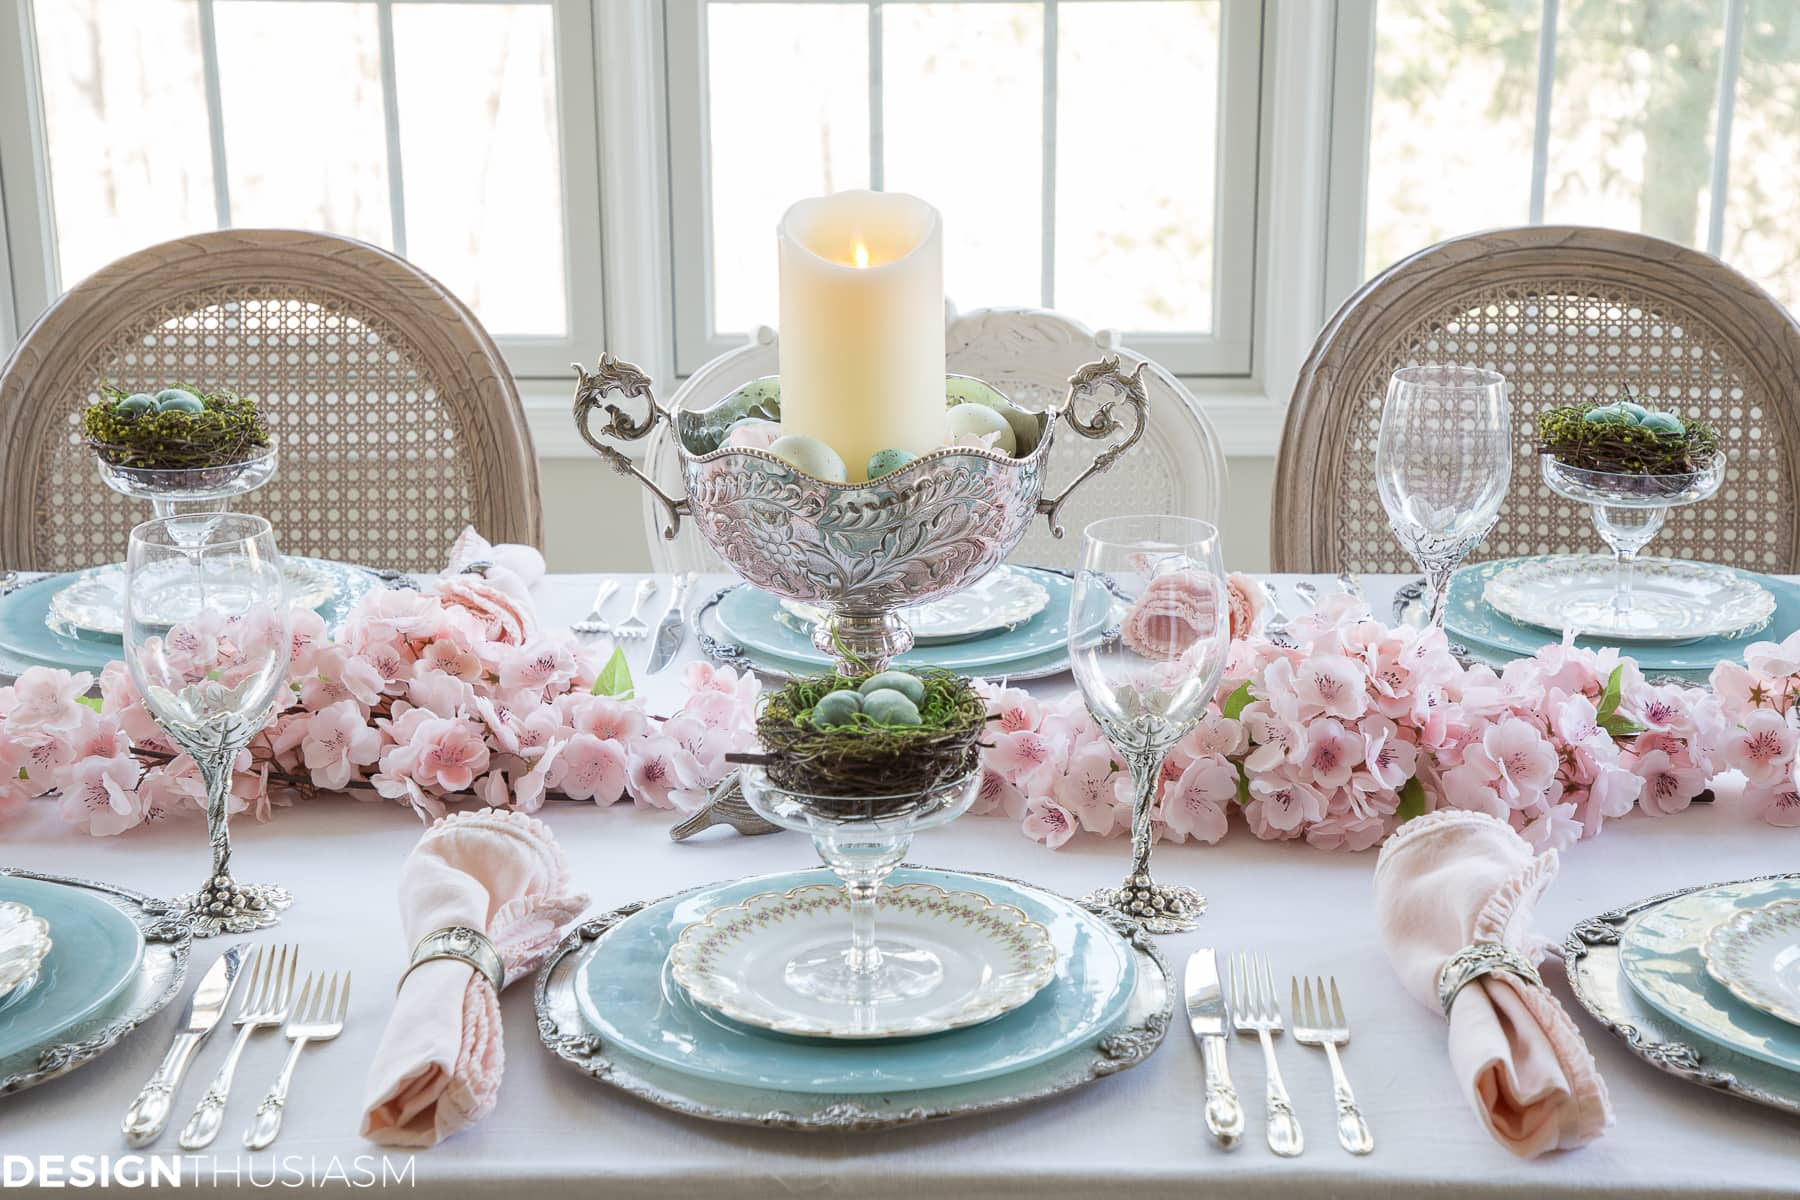 spring table setting with cherry blossom branch decorations